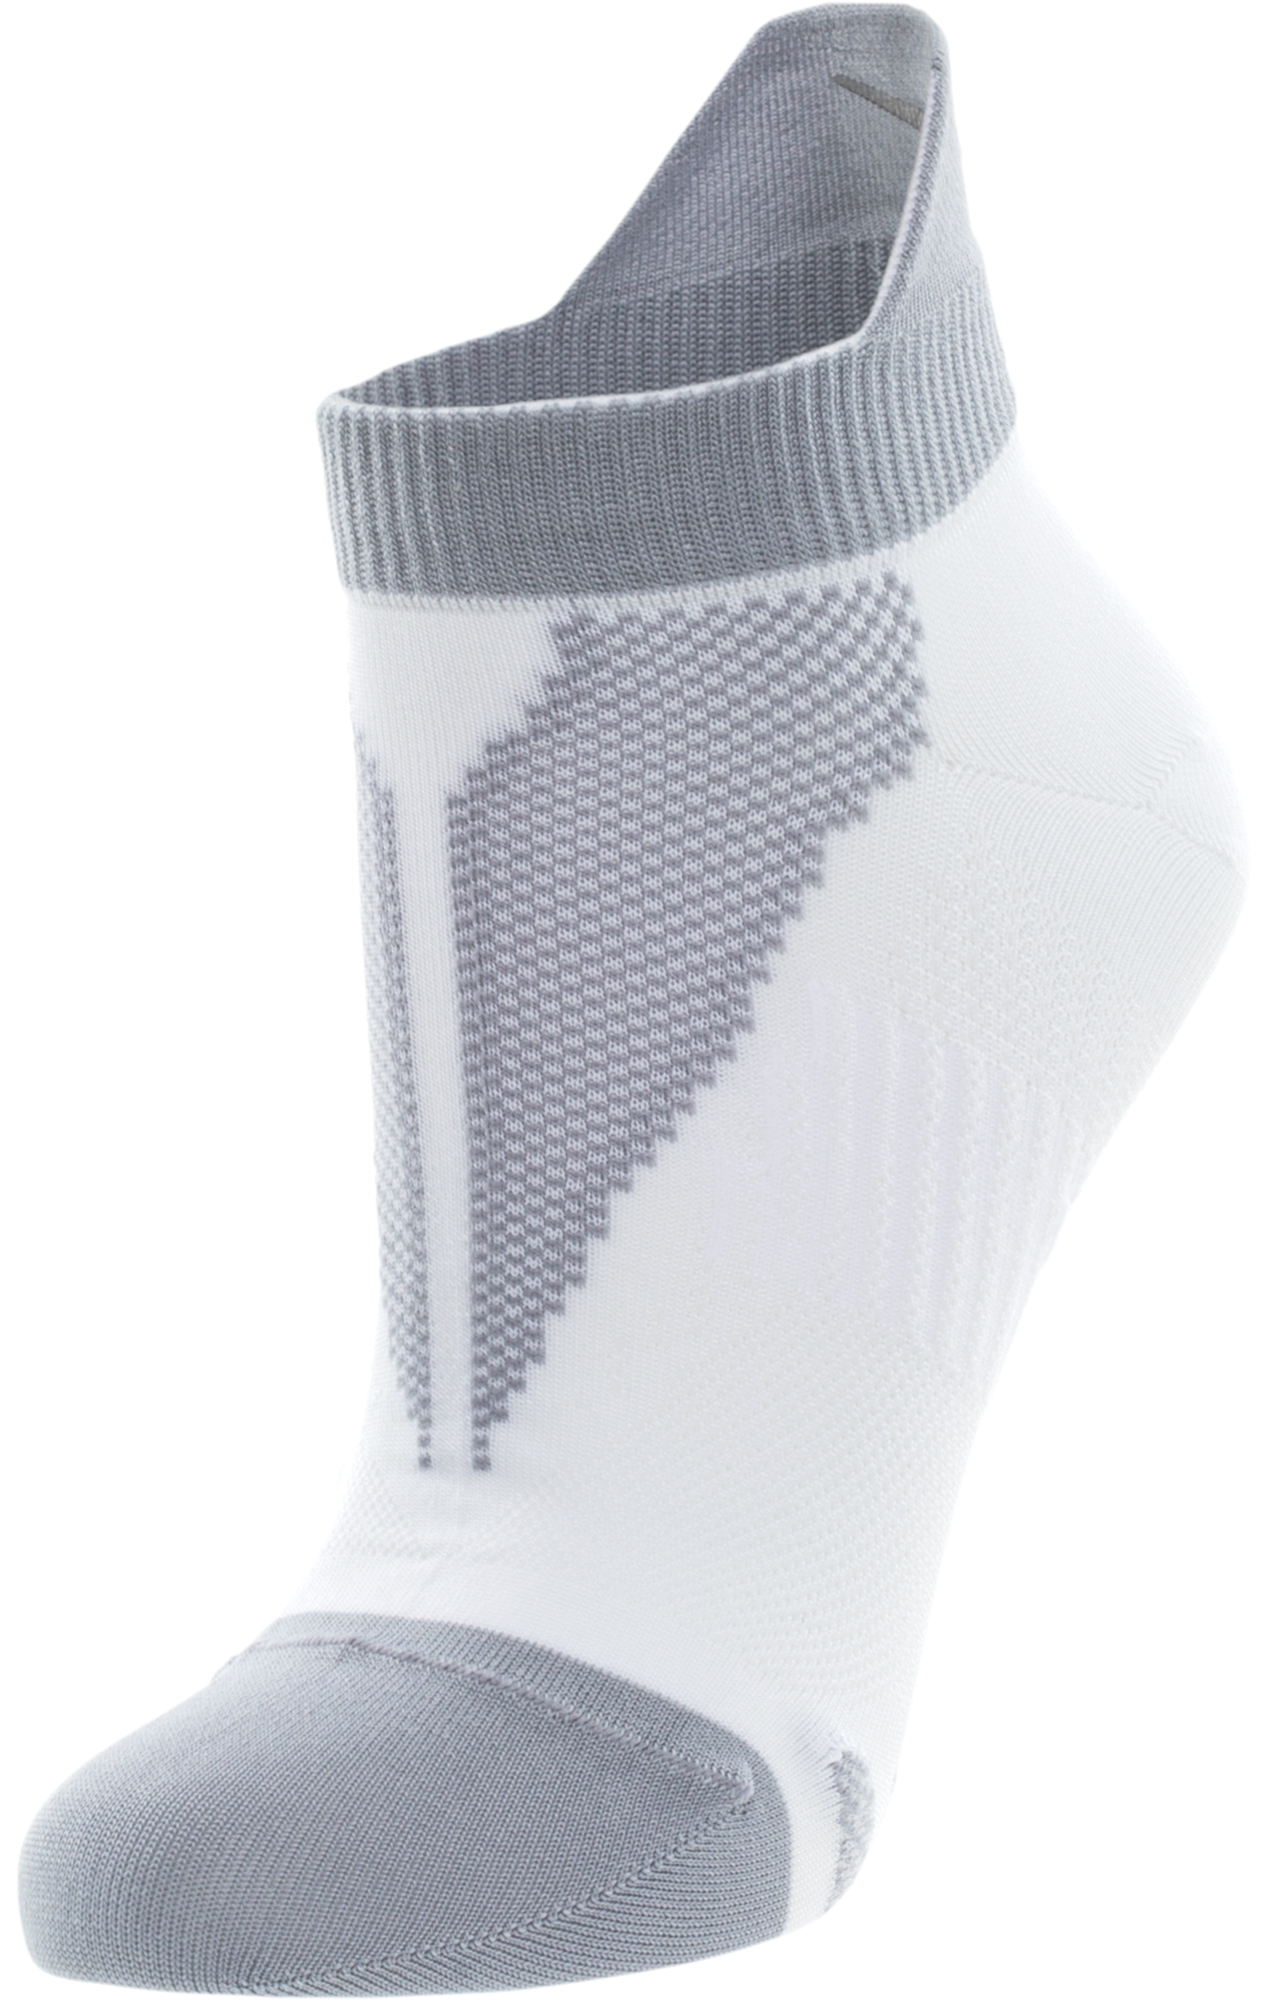 Nike Носки Nike Elite Lightweight No-Show Tab, 1 пара чулок д щитков nike guard lock elite sleeve su12 se0173 011 m чёрный